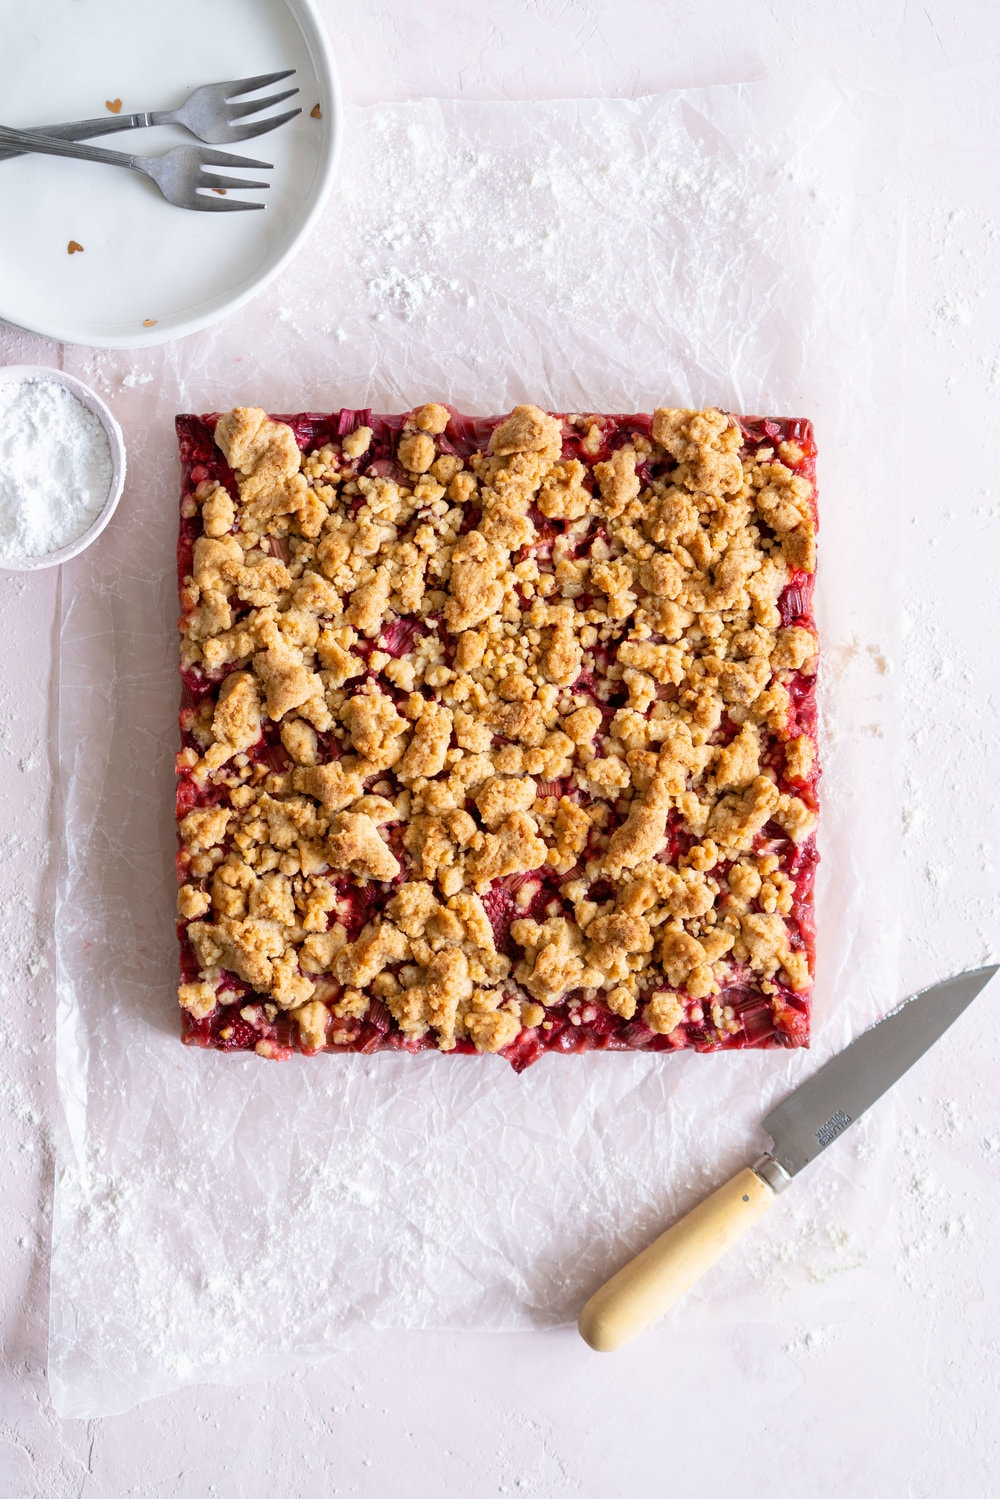 Brown Butter Hazelnut Strawberry Rhubarb Crumb Bars - a brown butter hazelnut shortbread is used as both the base and the crumble topping for these strawberry rhubarb crumb bars. These are the perfect early summer easy dessert! #crumbbars #strawberryrhubarb #brownbutter